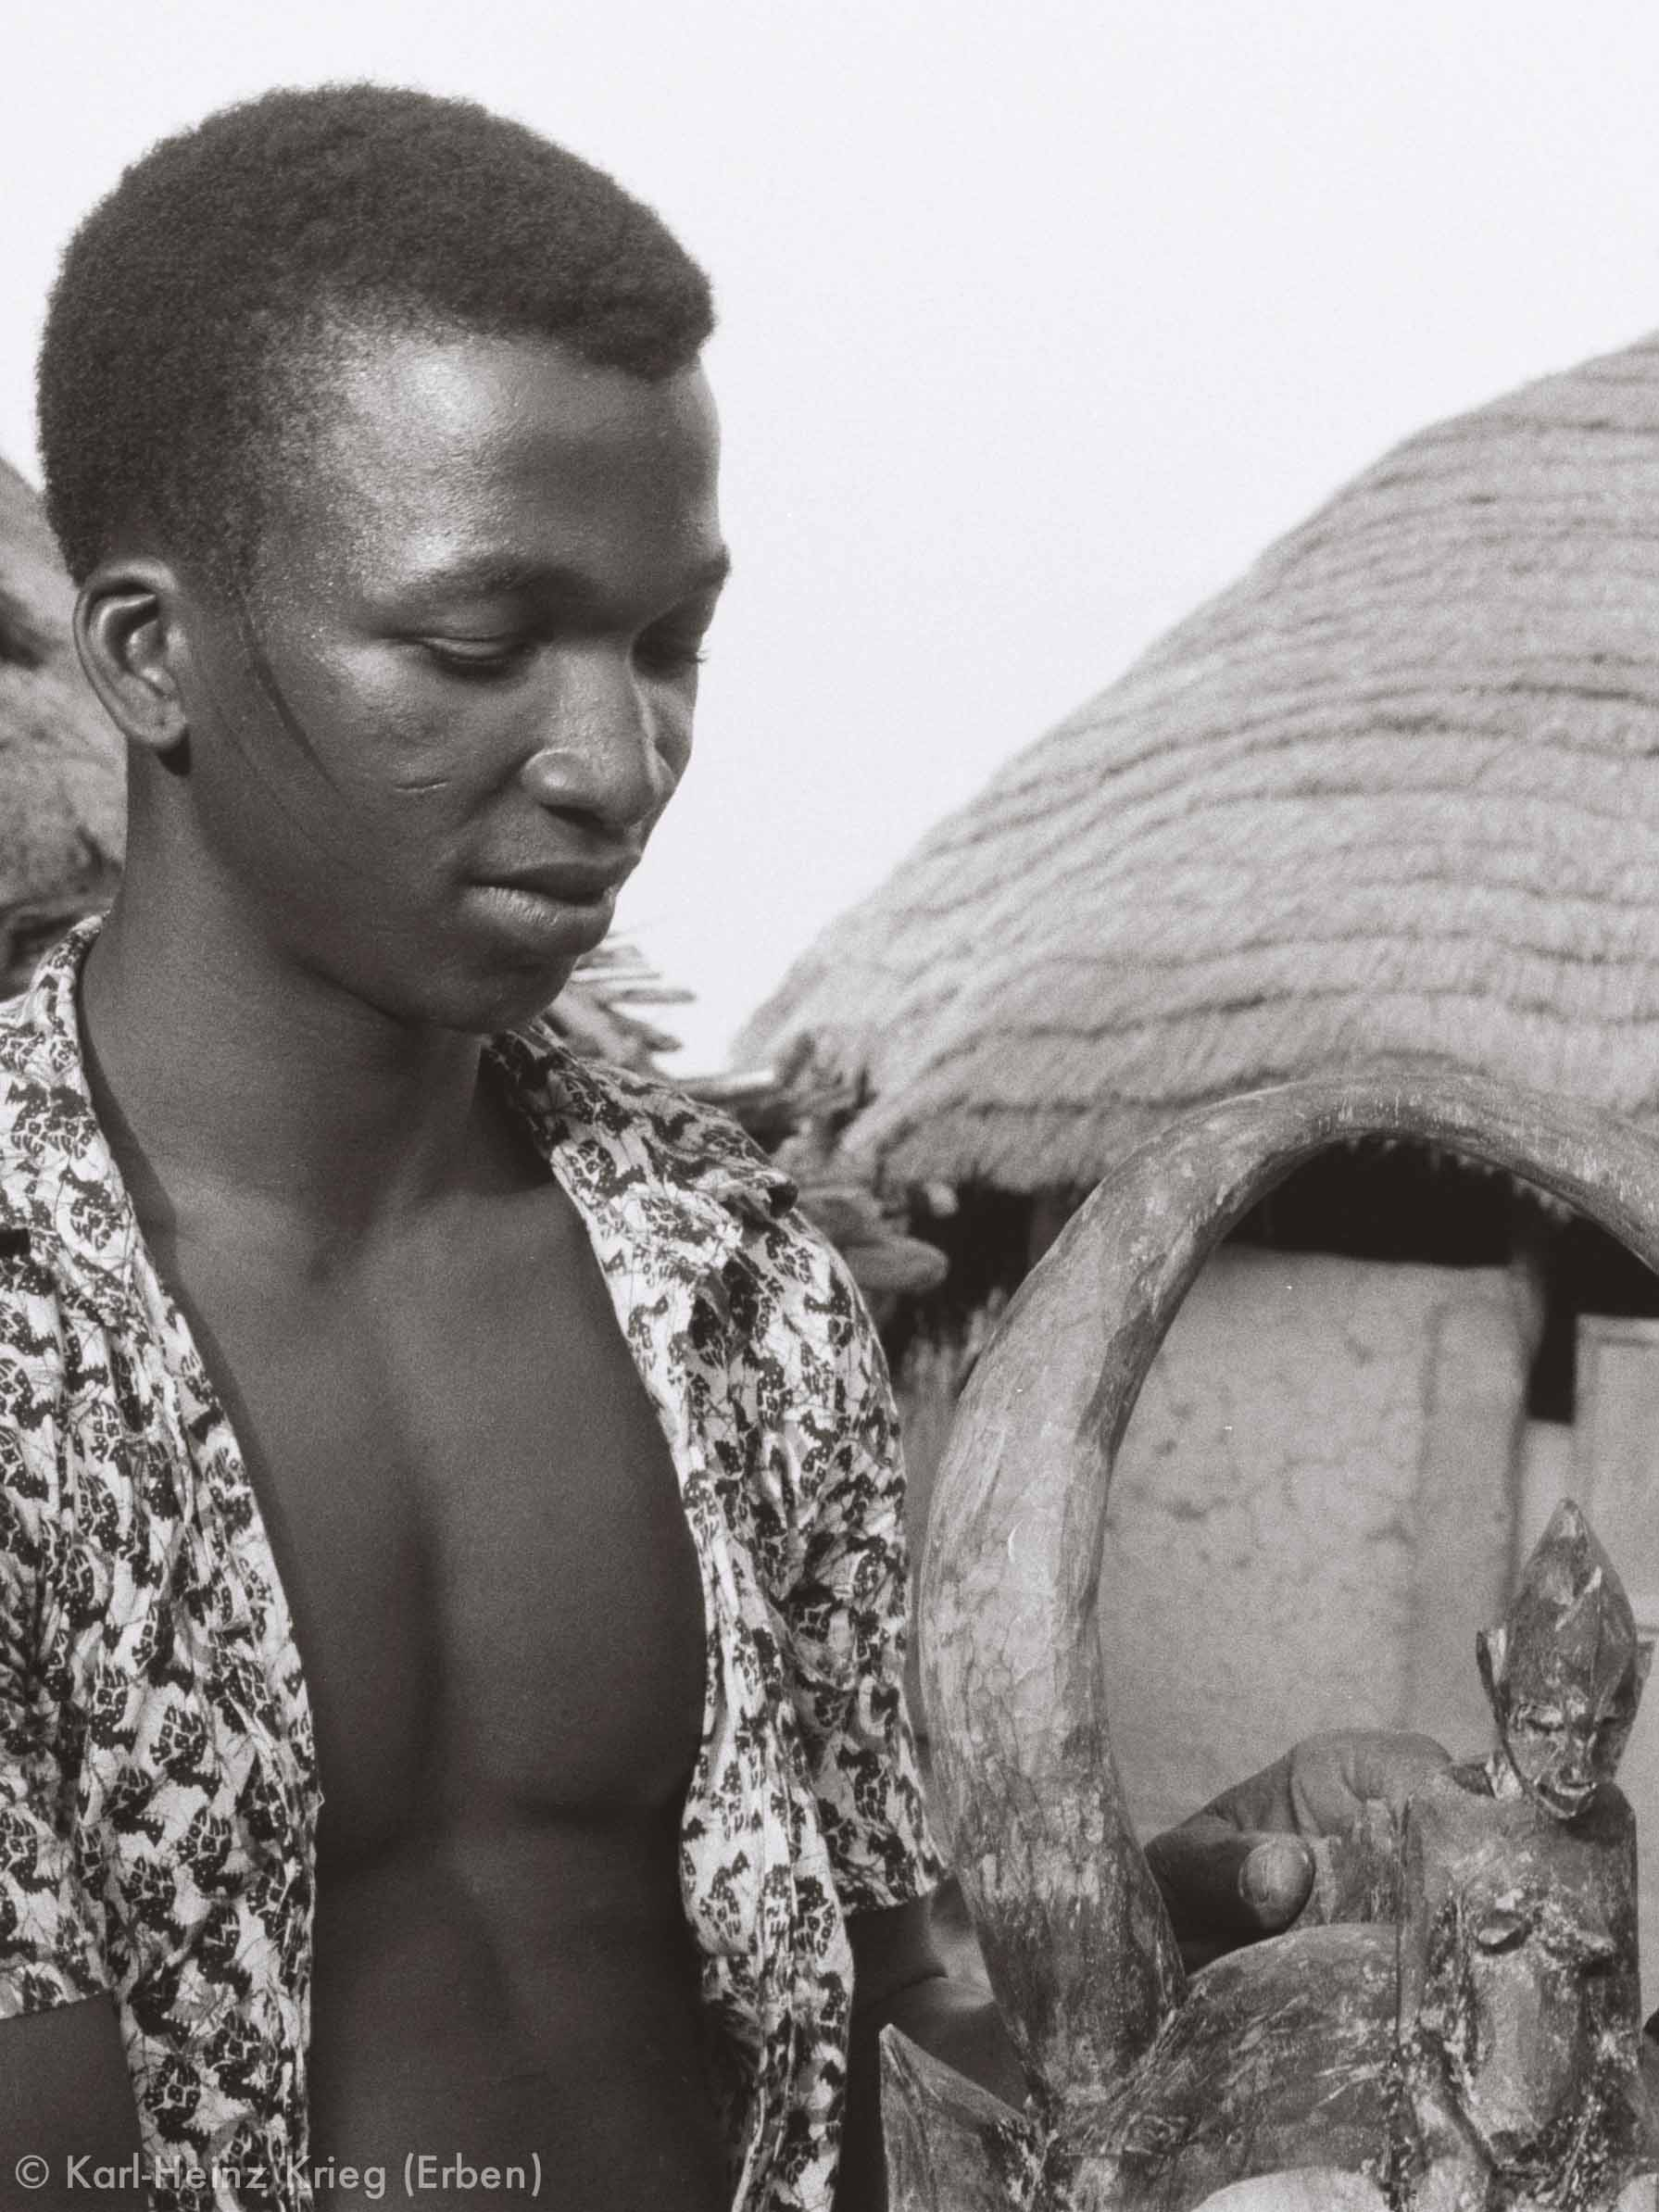 His son Klana Ouattara (1955– ) with a newly carved helmet mask. Photo: Karl-Heinz Krieg, Nafoun (Region of Boundiali, Côte d'Ivoire), 1975